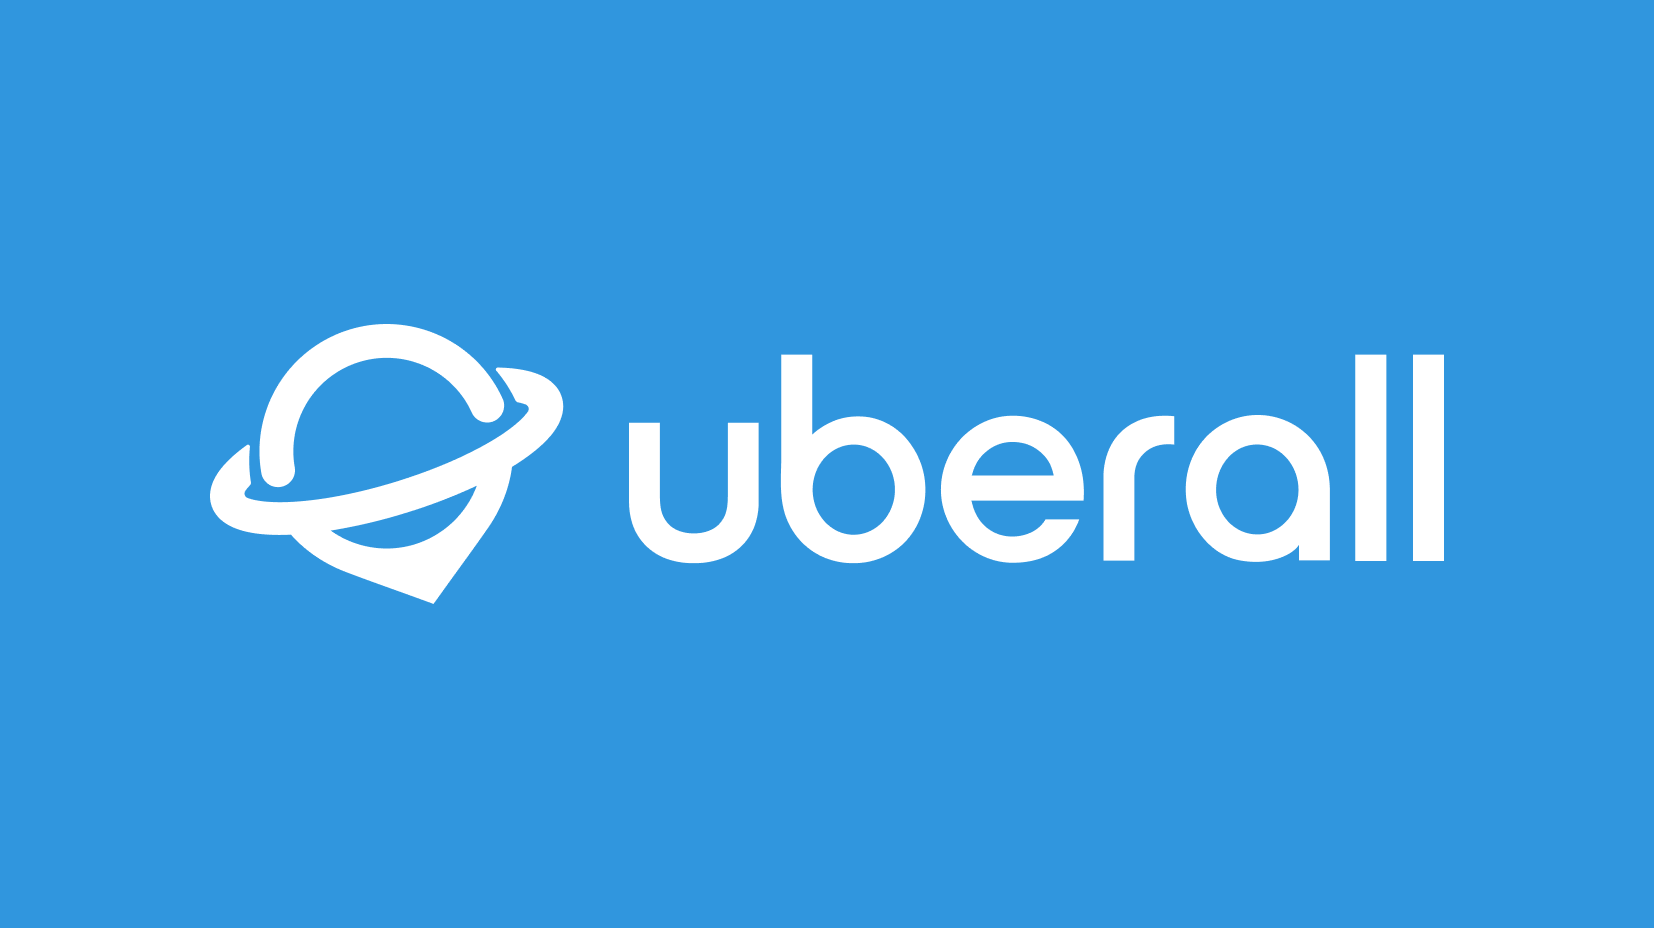 Tech & Product DD | Growth | Code & Co. advises Bregal Milestone on Uberall